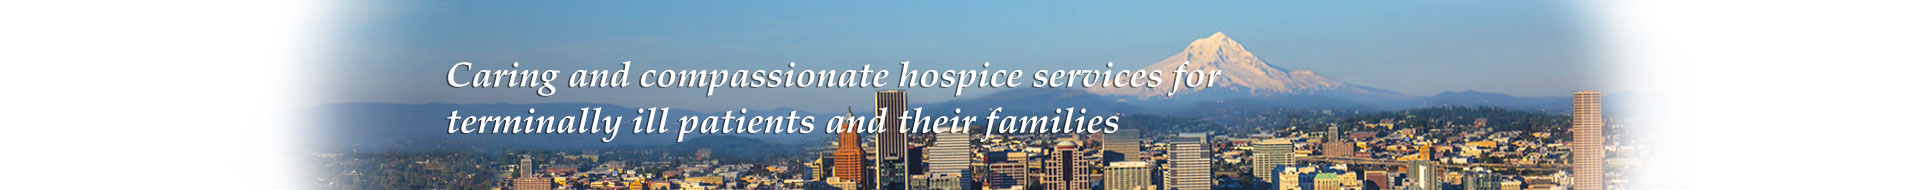 Harbor Light Hospice banner quote